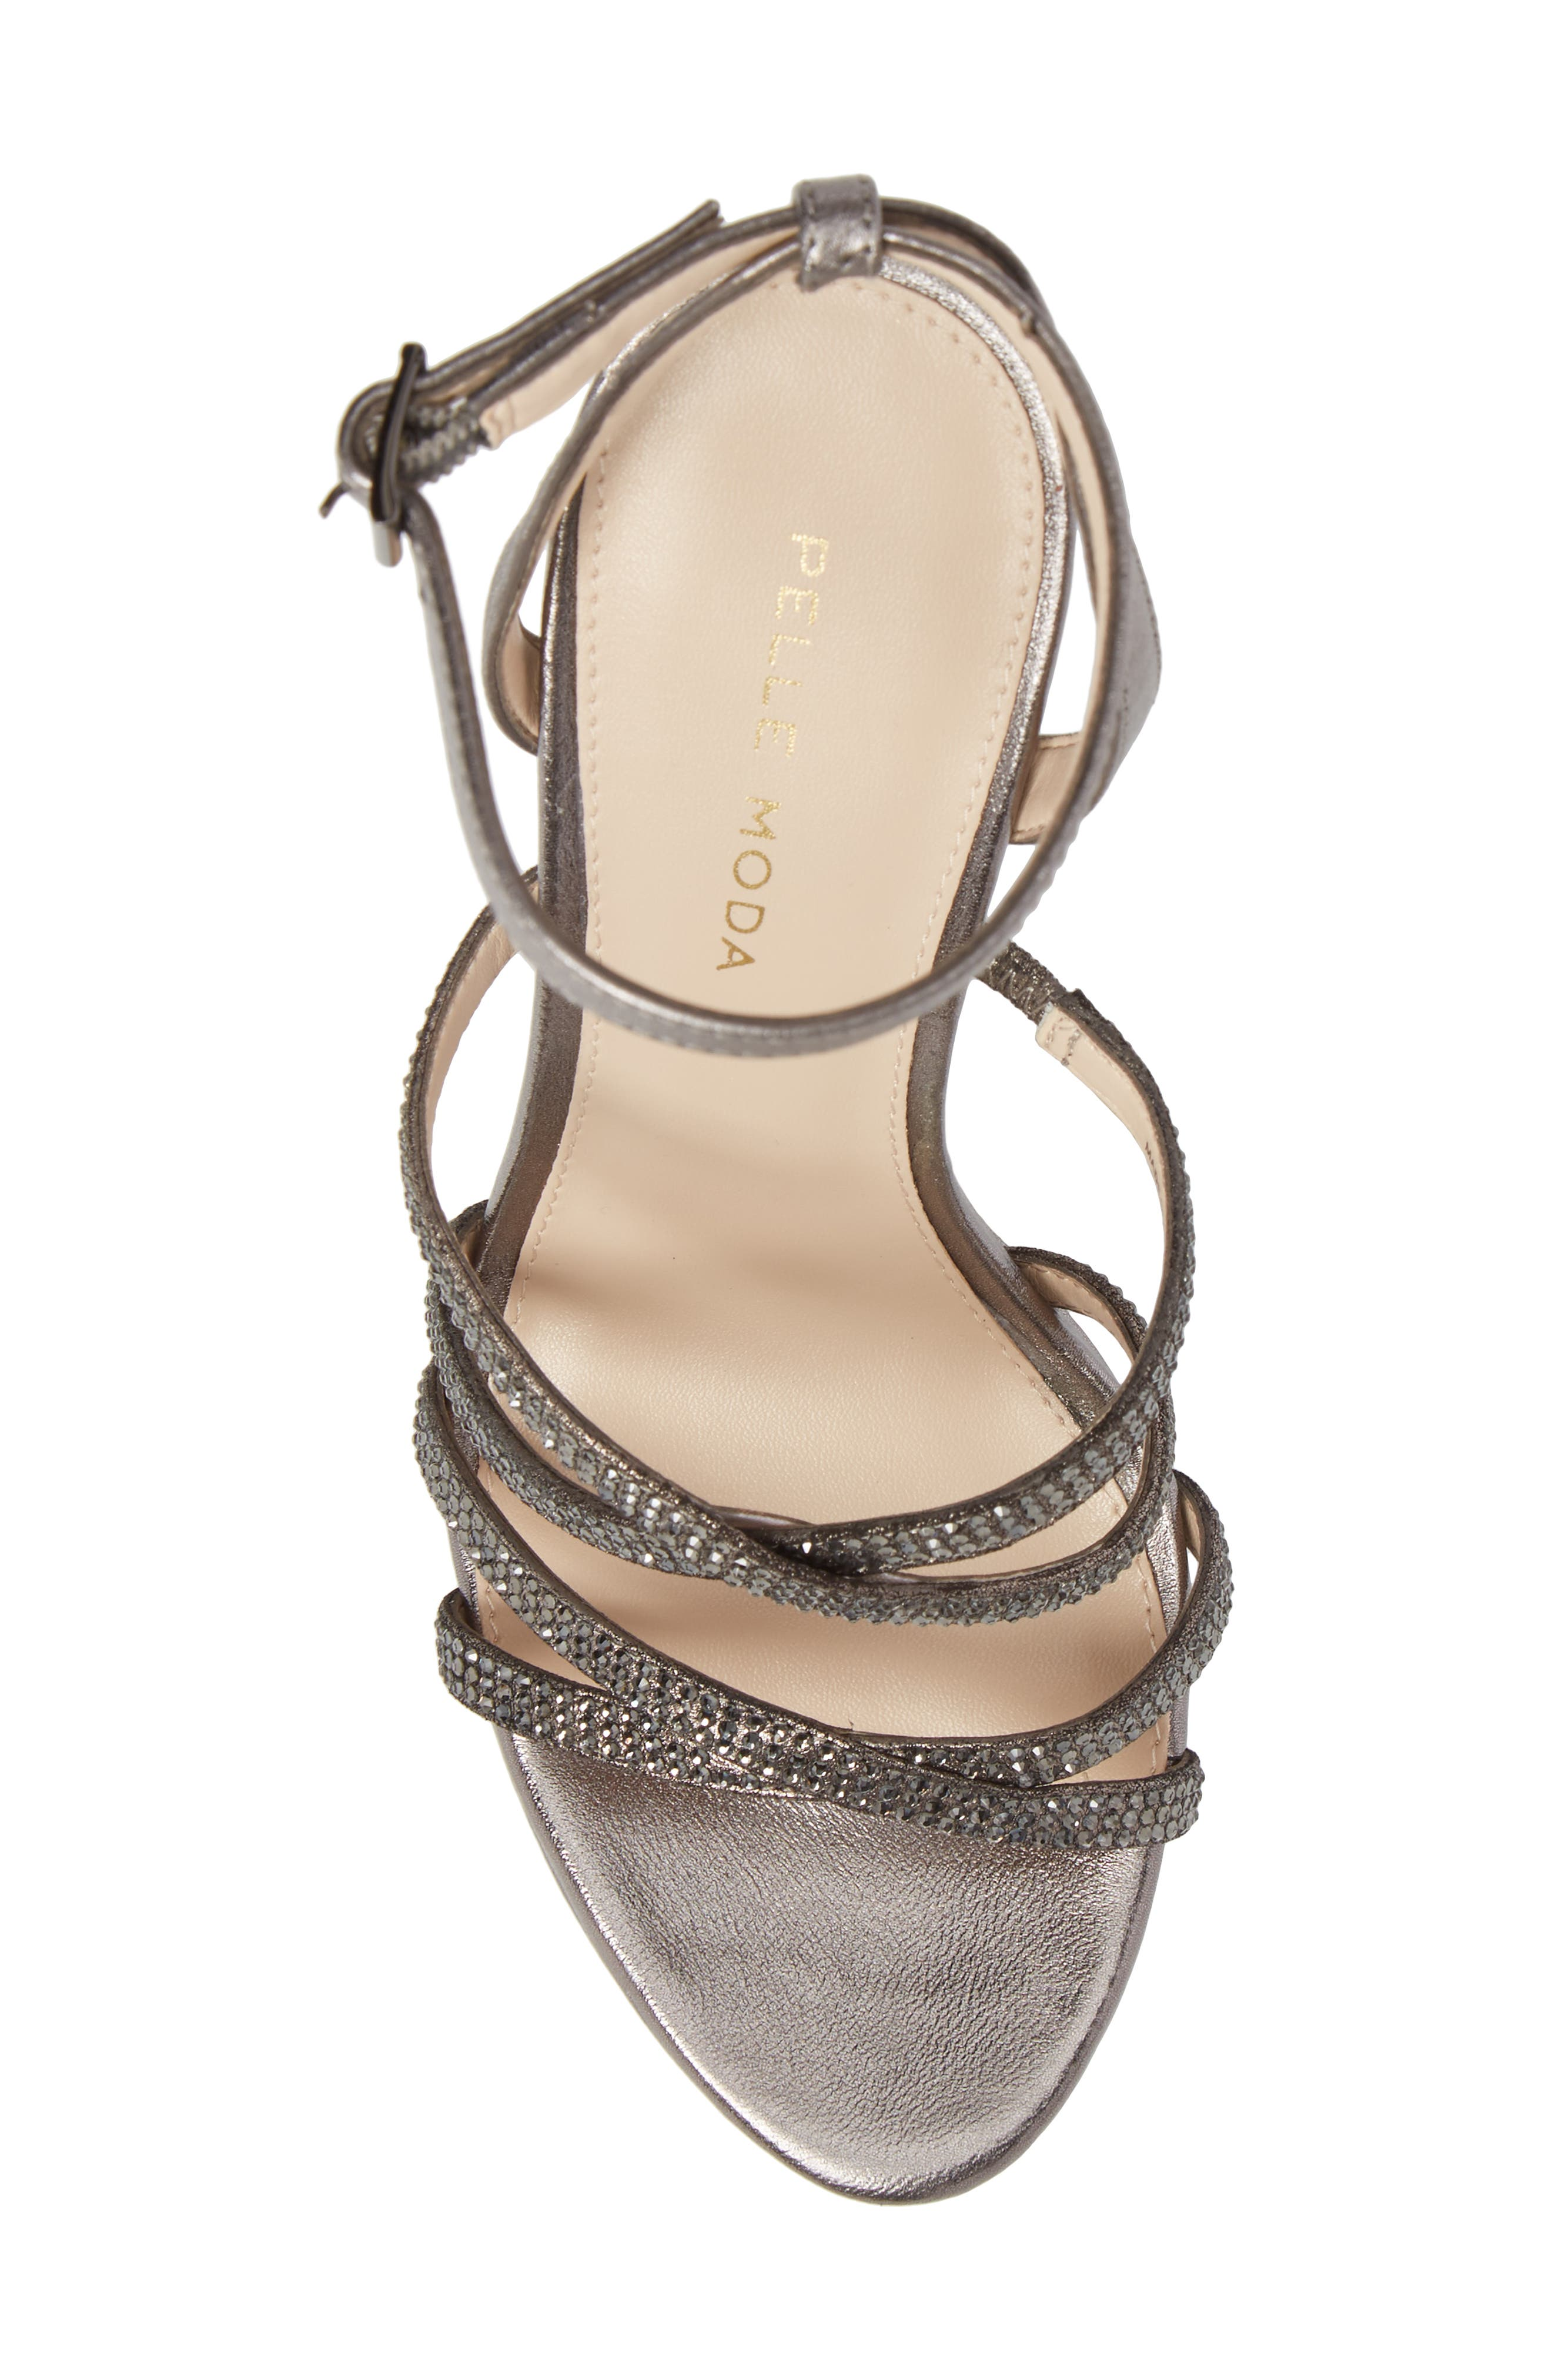 Oak Platform Sandal,                             Alternate thumbnail 5, color,                             Pewter Metallic Suede